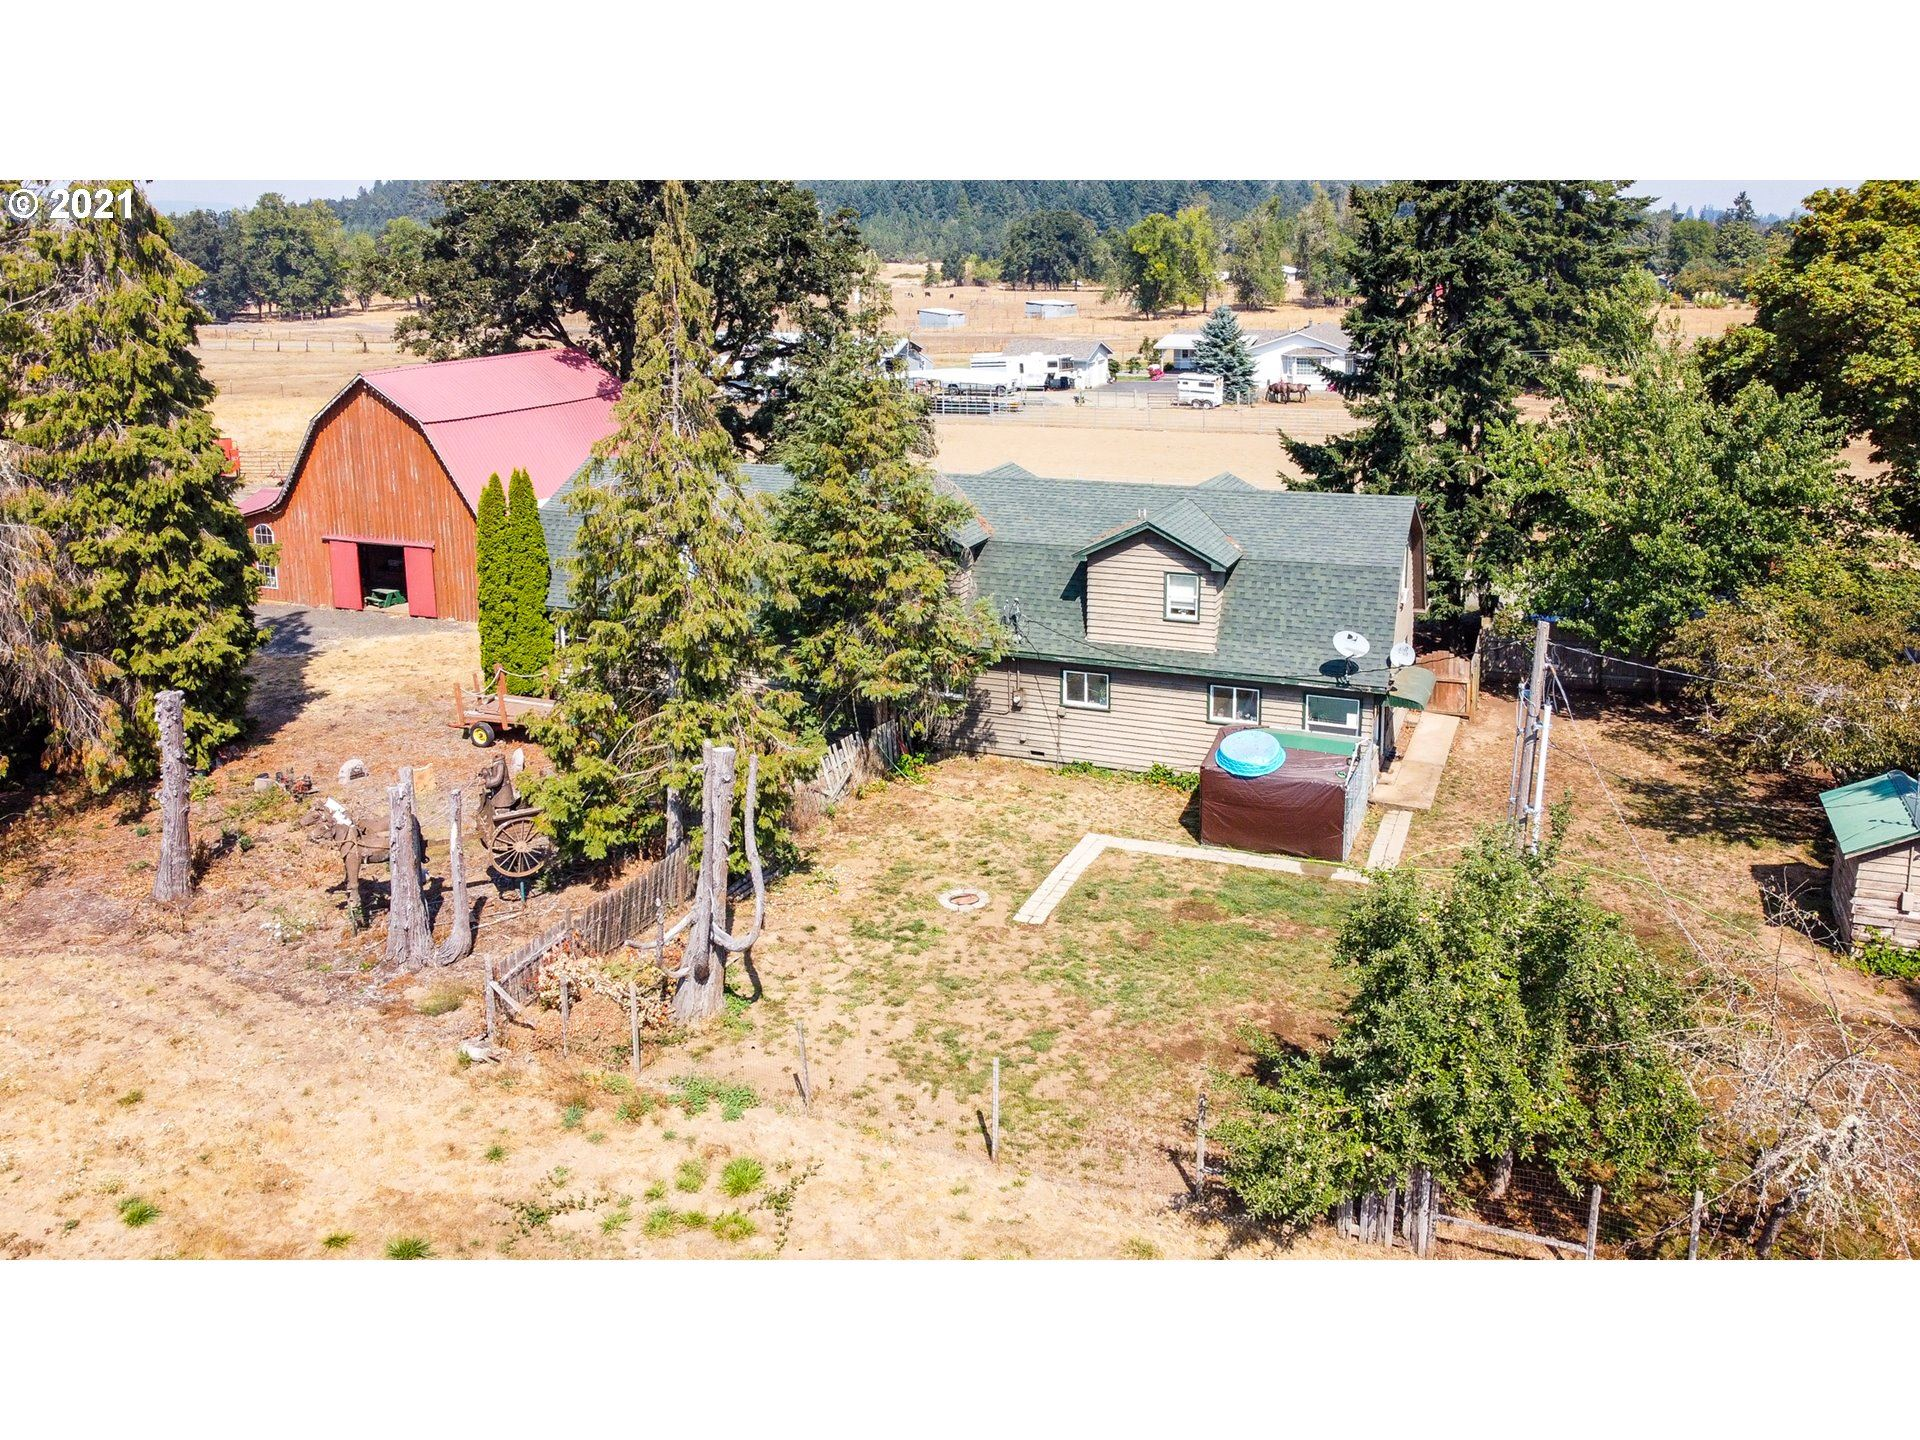 Photo for 82232 HWY 99, Creswell, OR 97426 (MLS # 21563858)